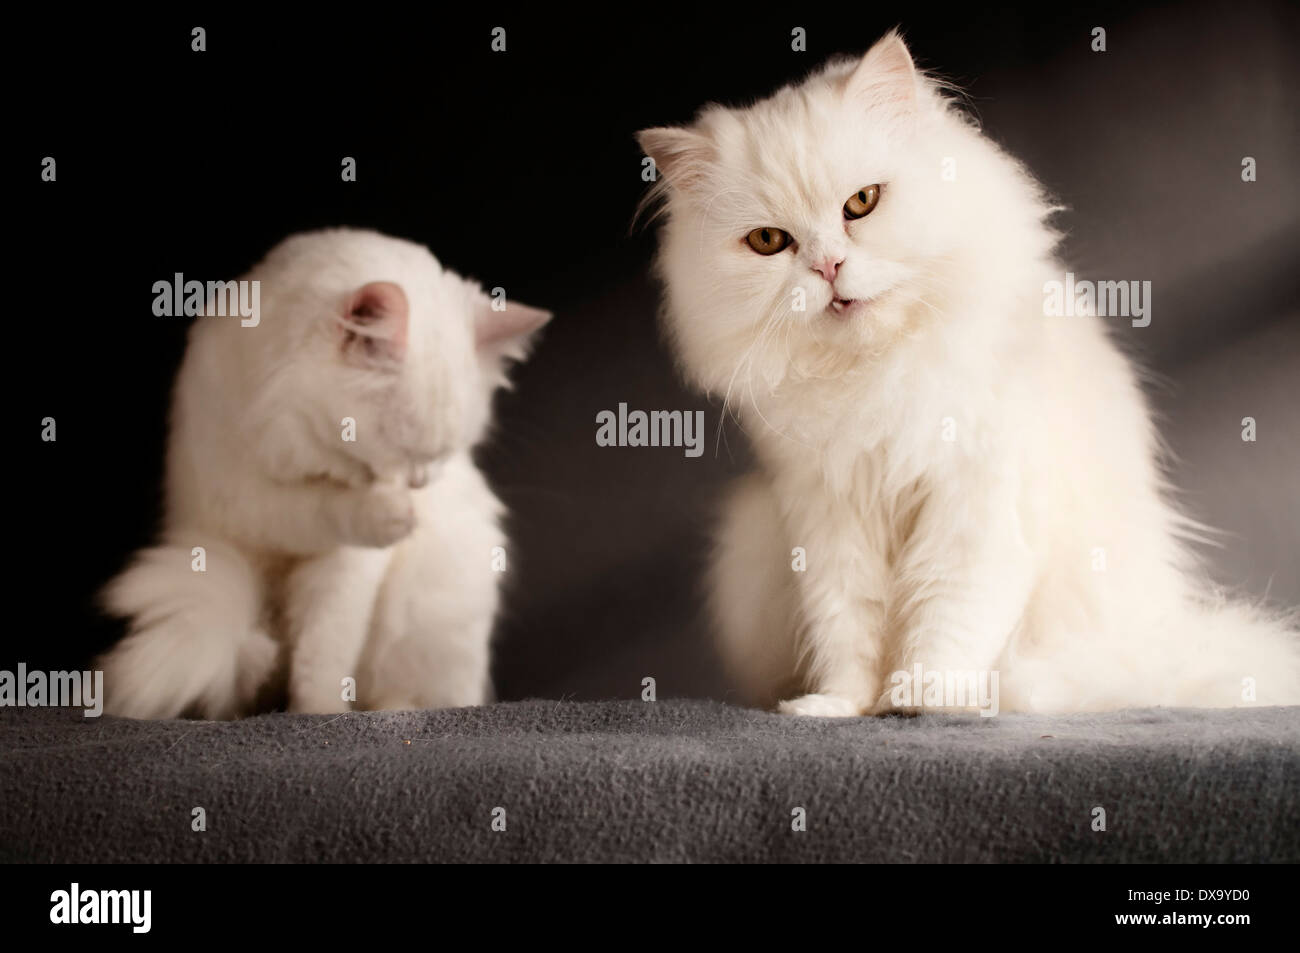 Two cats - Stock Image